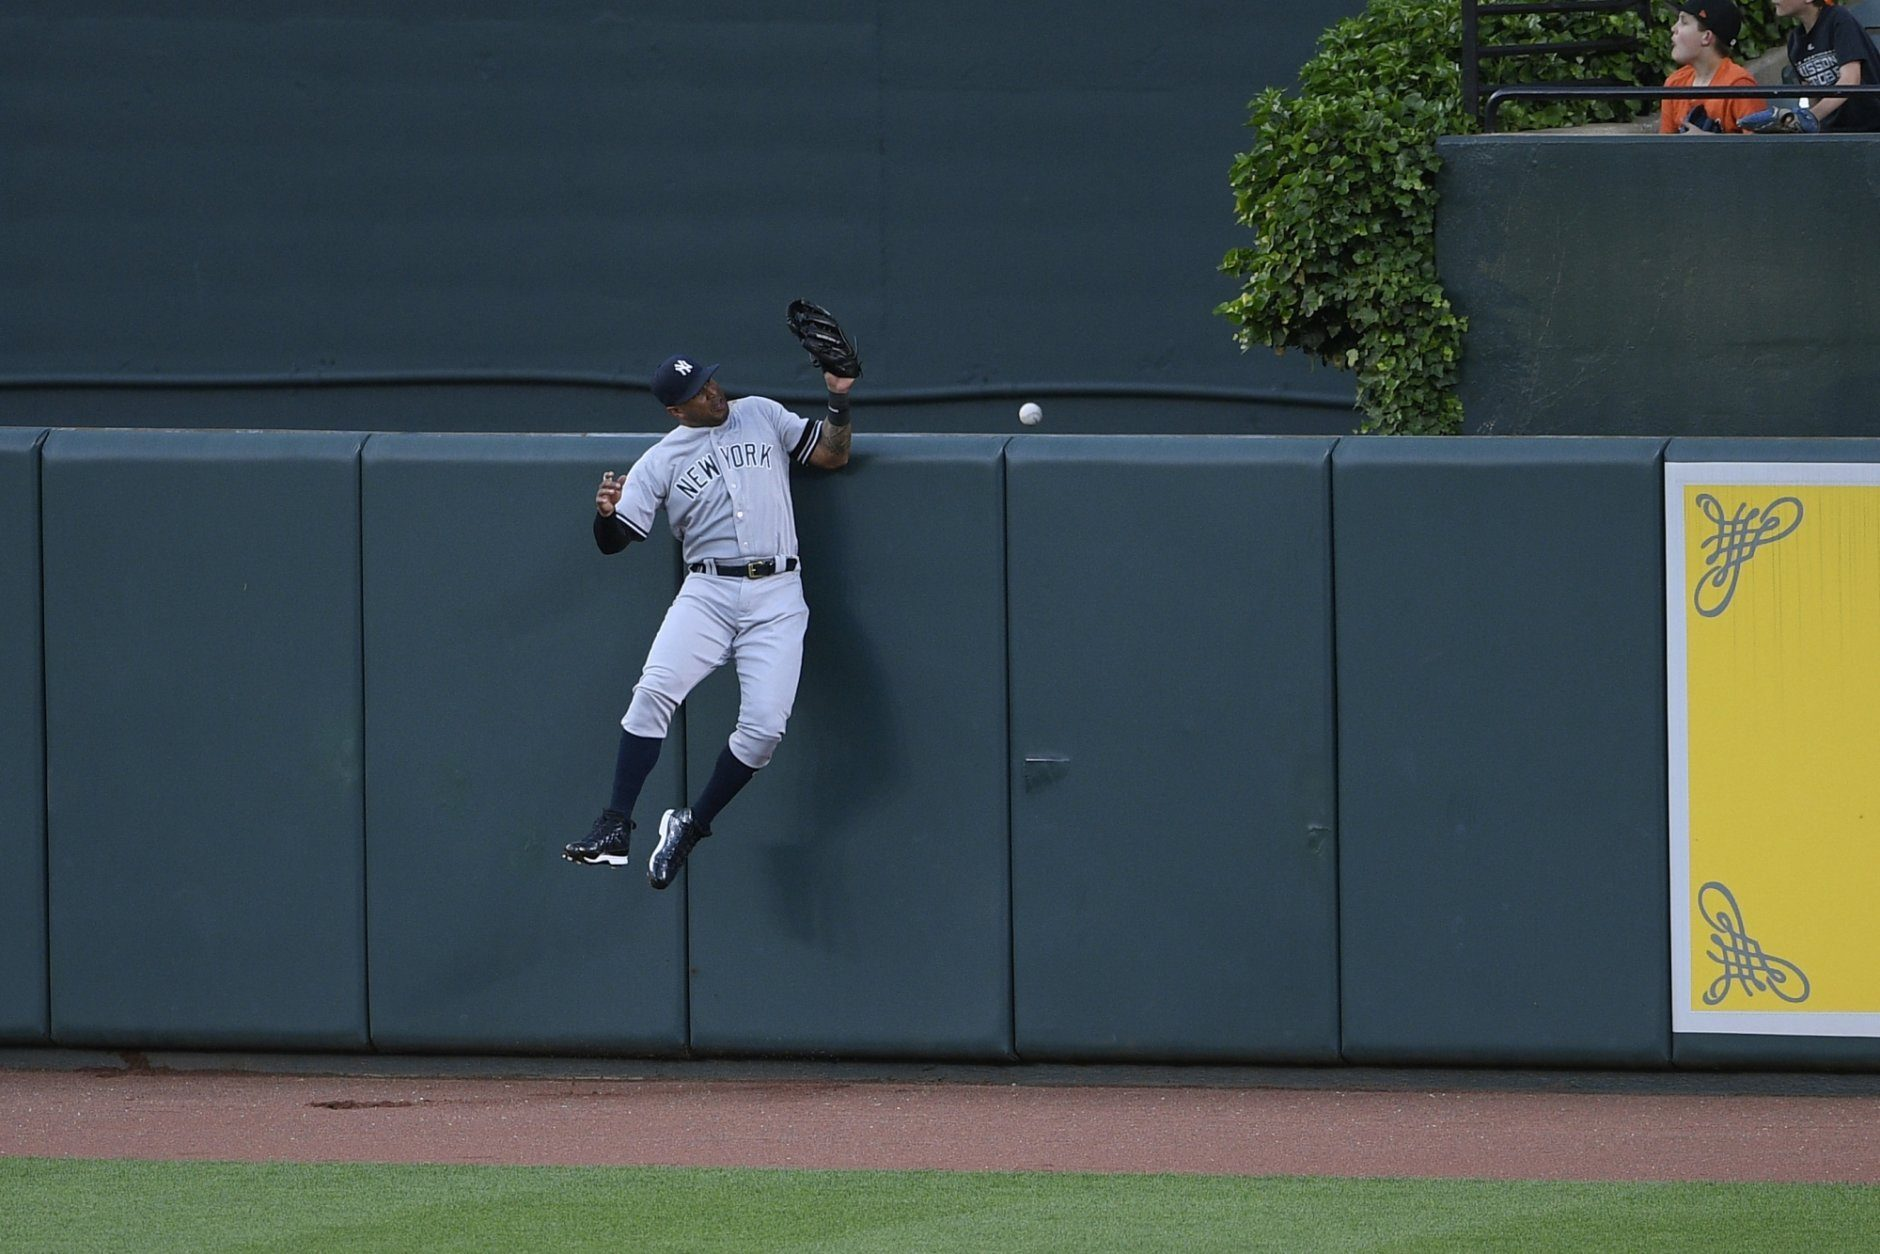 New York Yankees center fielder Aaron Hicks cannot get to a ball that went for a home run by Baltimore Orioles' Hanser Alberto during the third inning of a baseball game, Monday, May 20, 2019, in Baltimore. (AP Photo/Nick Wass)